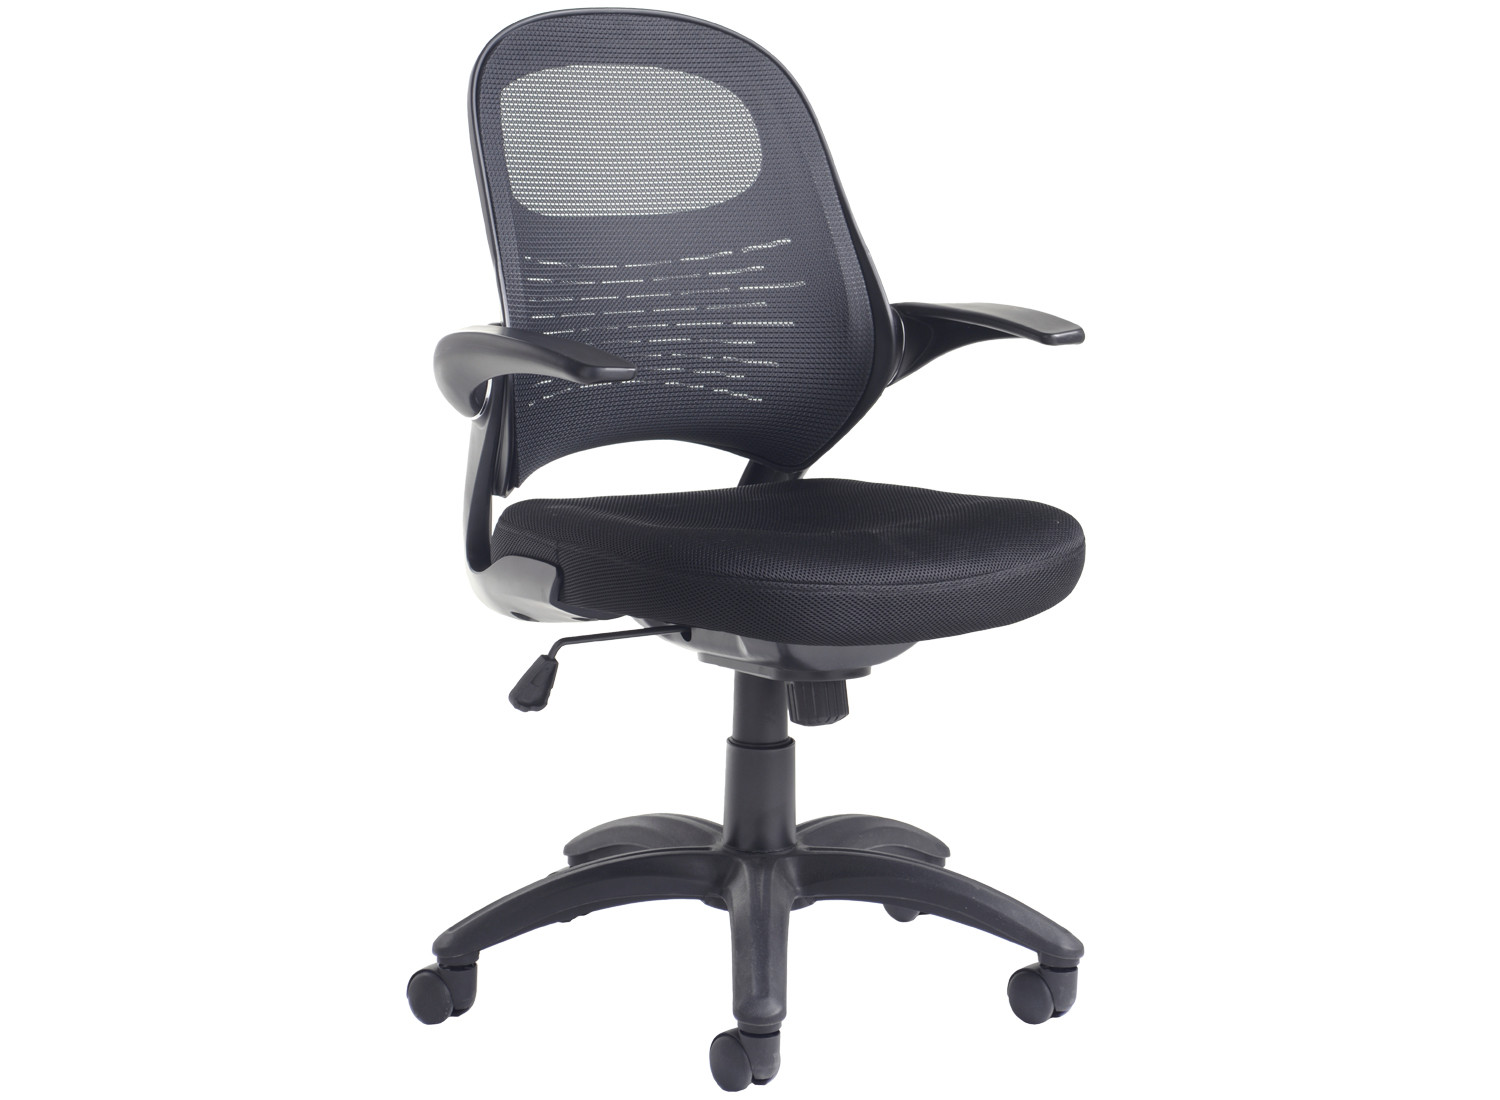 Next-Day Orion Mesh Back Operator Chair